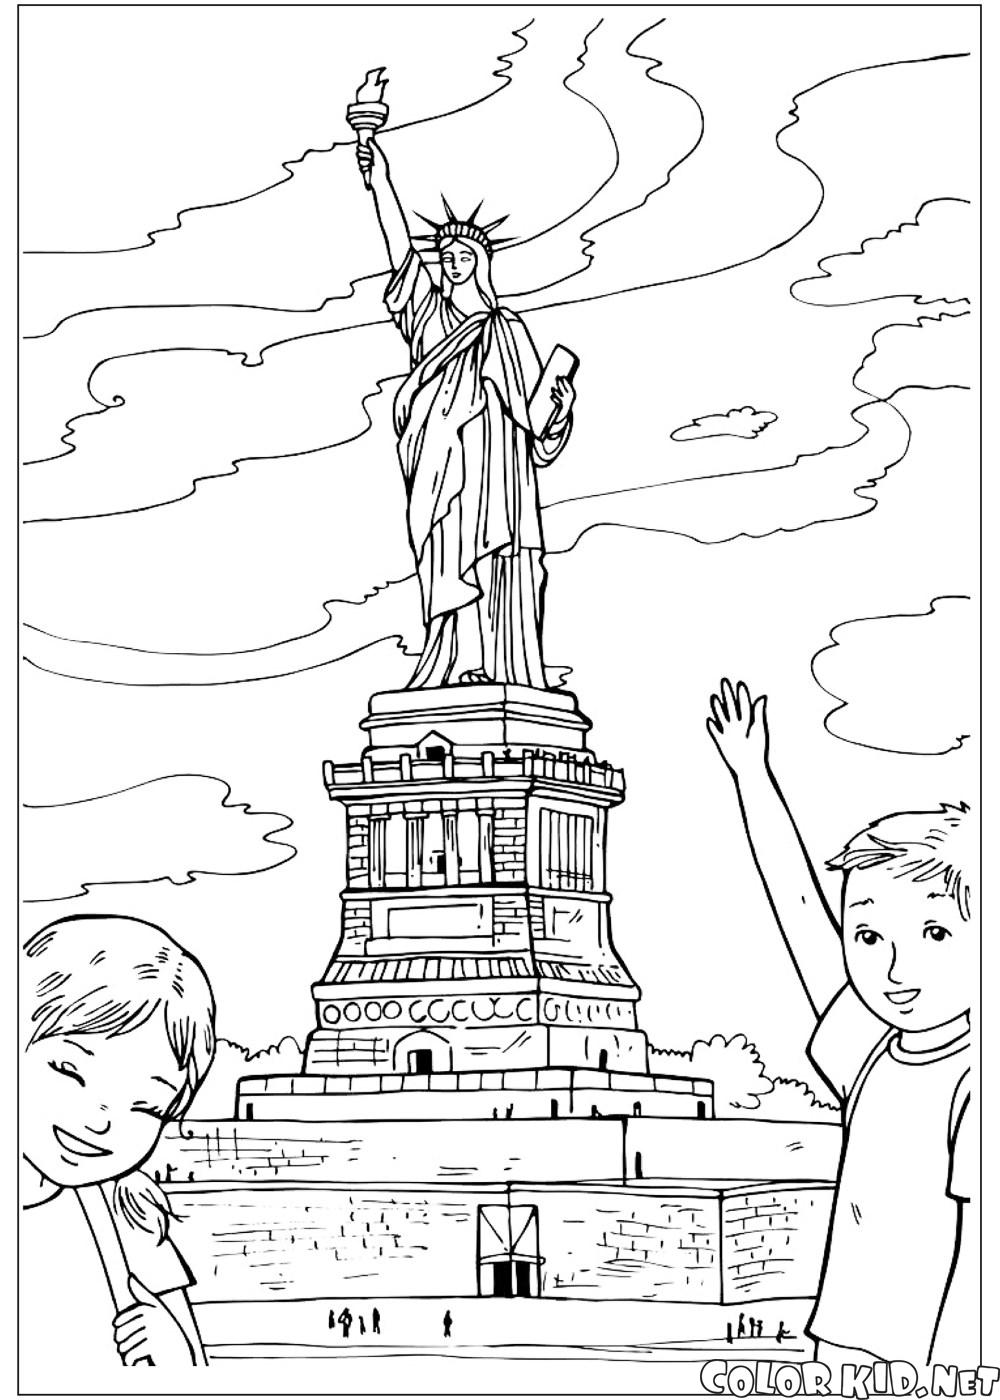 - Coloring Page - Statue Of Liberty